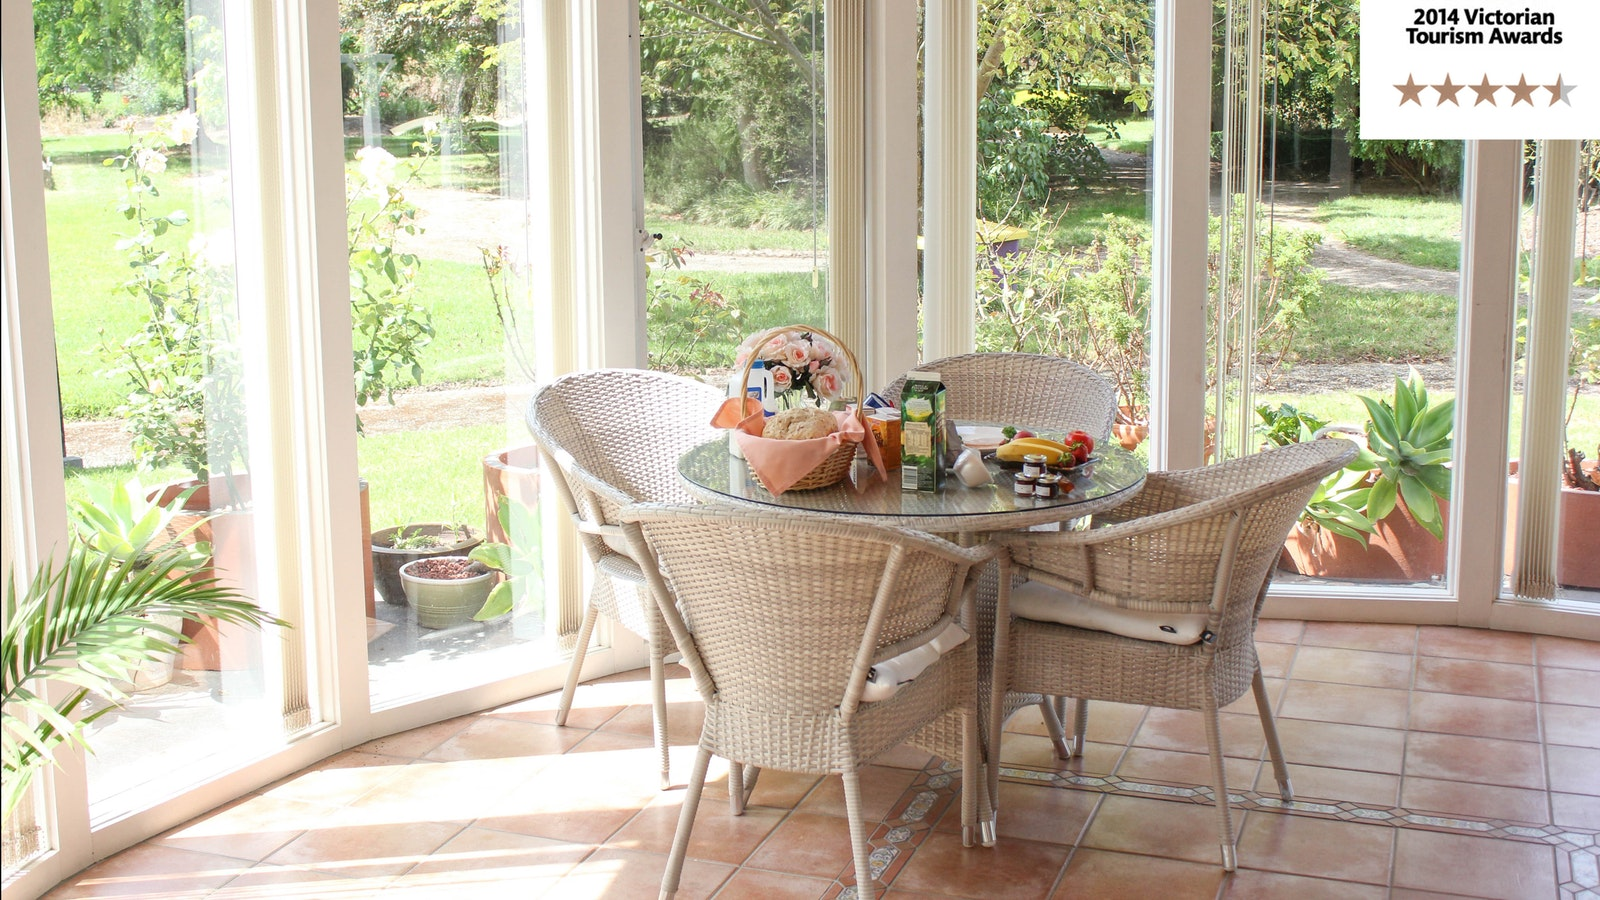 Breakfast in your private sunroom